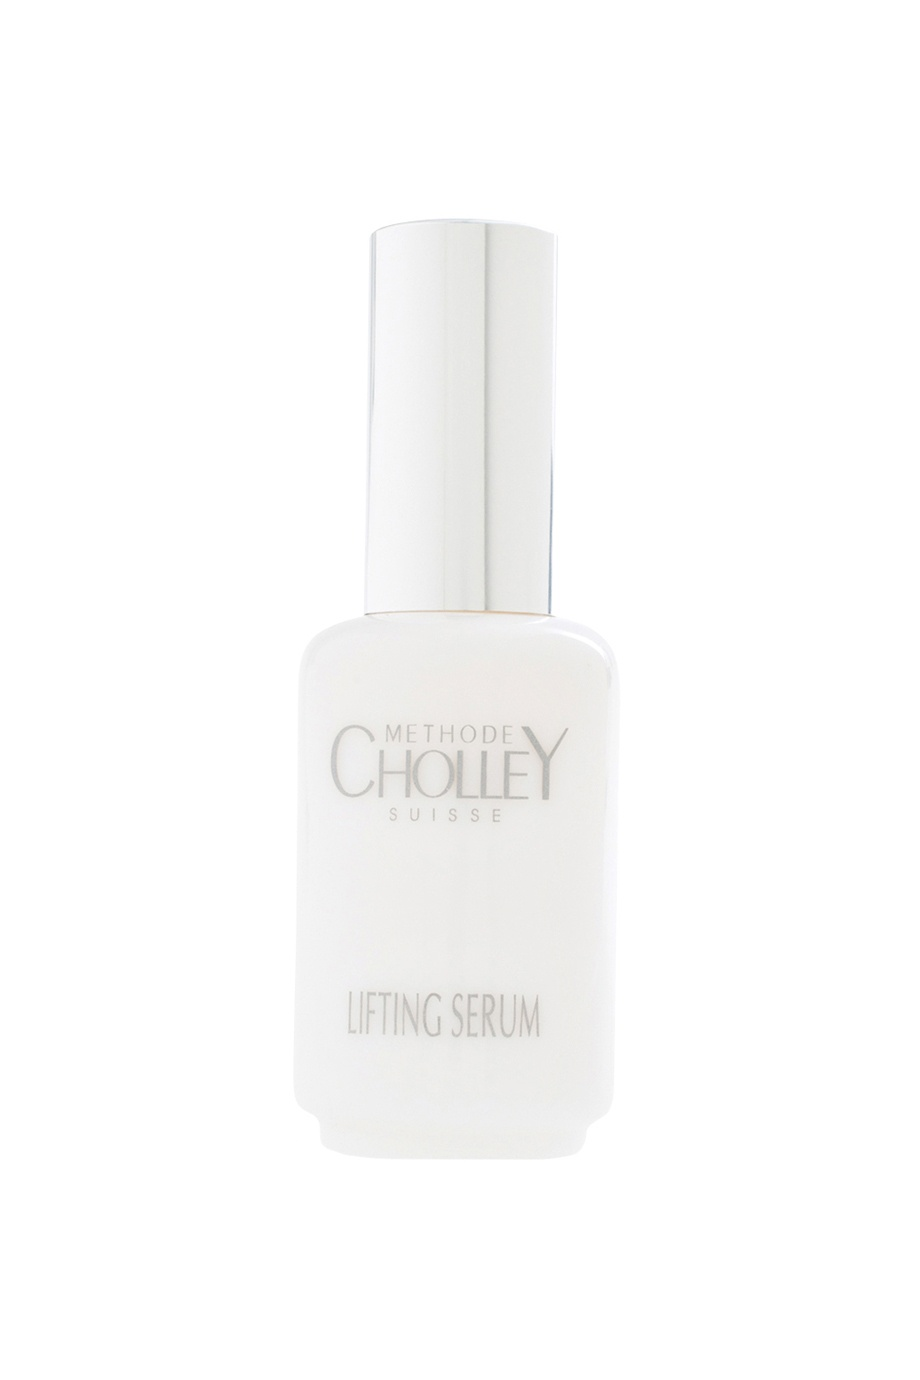 Лифтинг-сыворотка для лица Cholley 50ml Methode Cholley Suisse (фото)